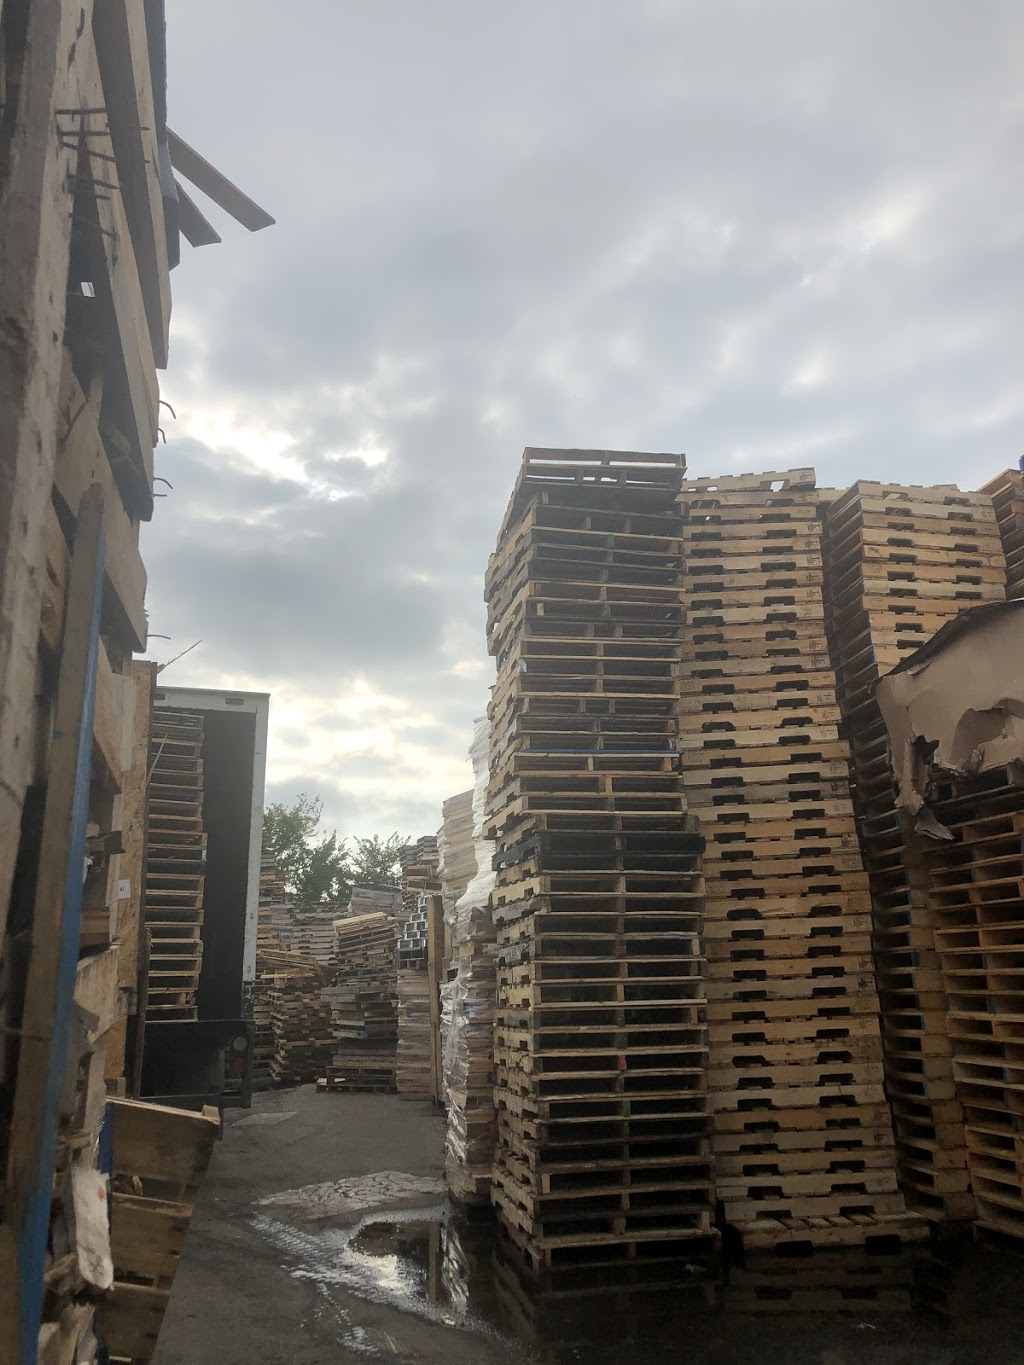 J.A.P Pallets - point of interest  | Photo 2 of 10 | Address: 739 S Cicero Ave, Chicago, IL 60644, USA | Phone: (773) 368-2438